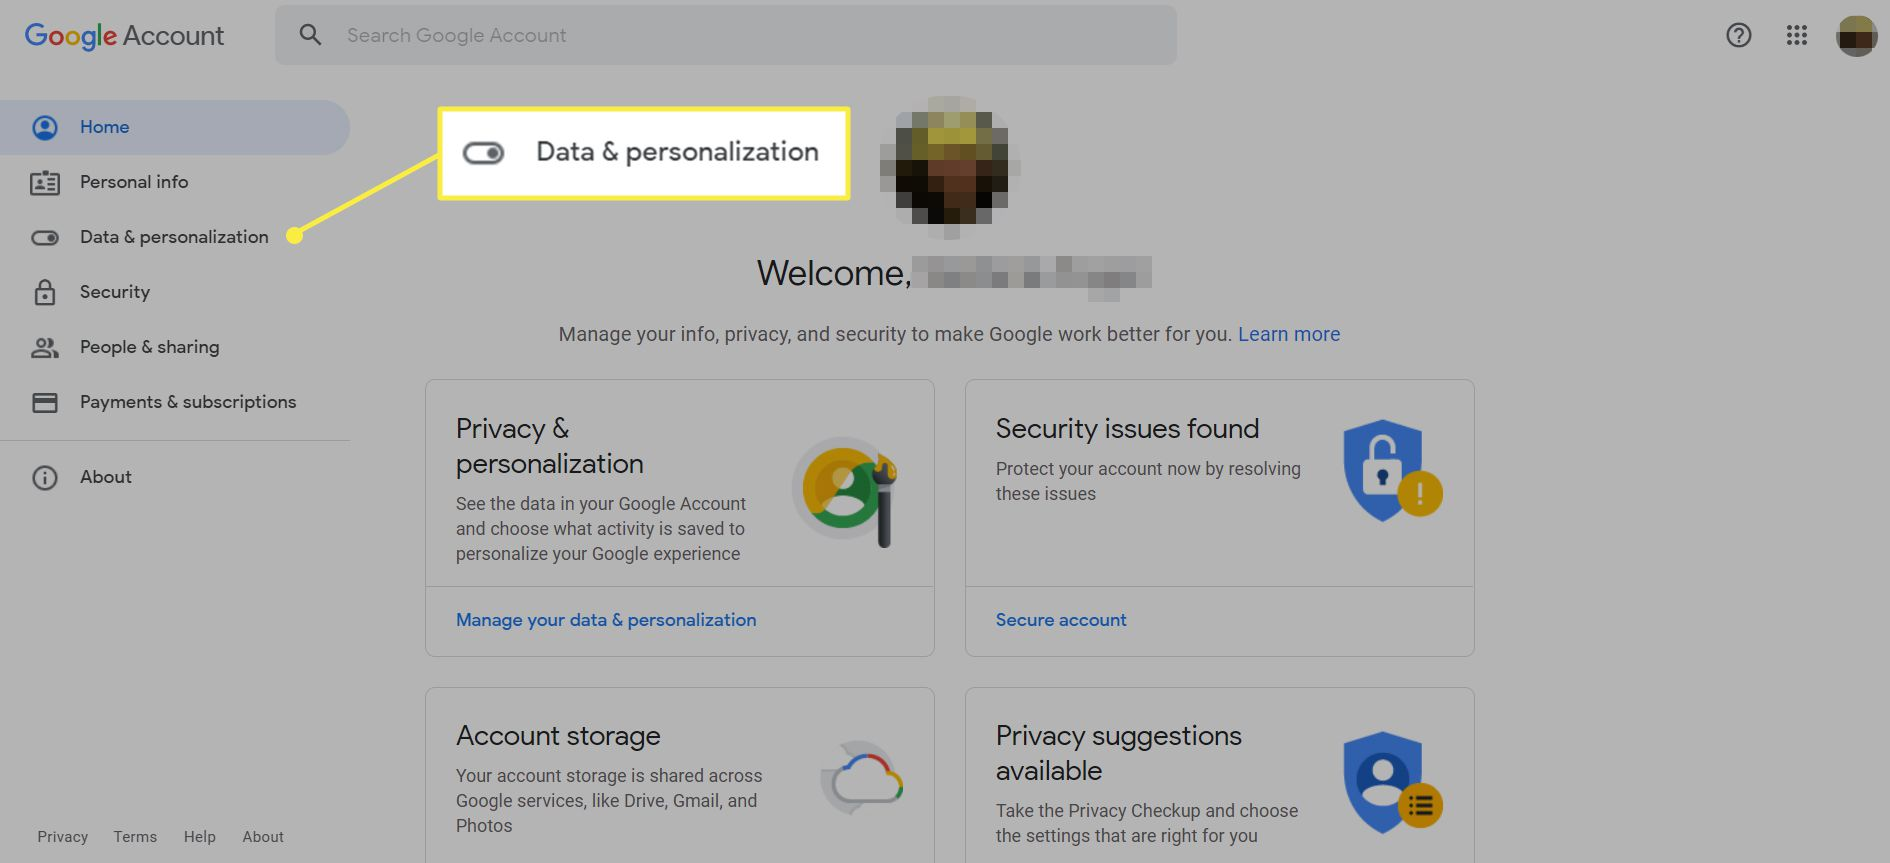 A Goggle account screen with 'Data & personalization' highlighted